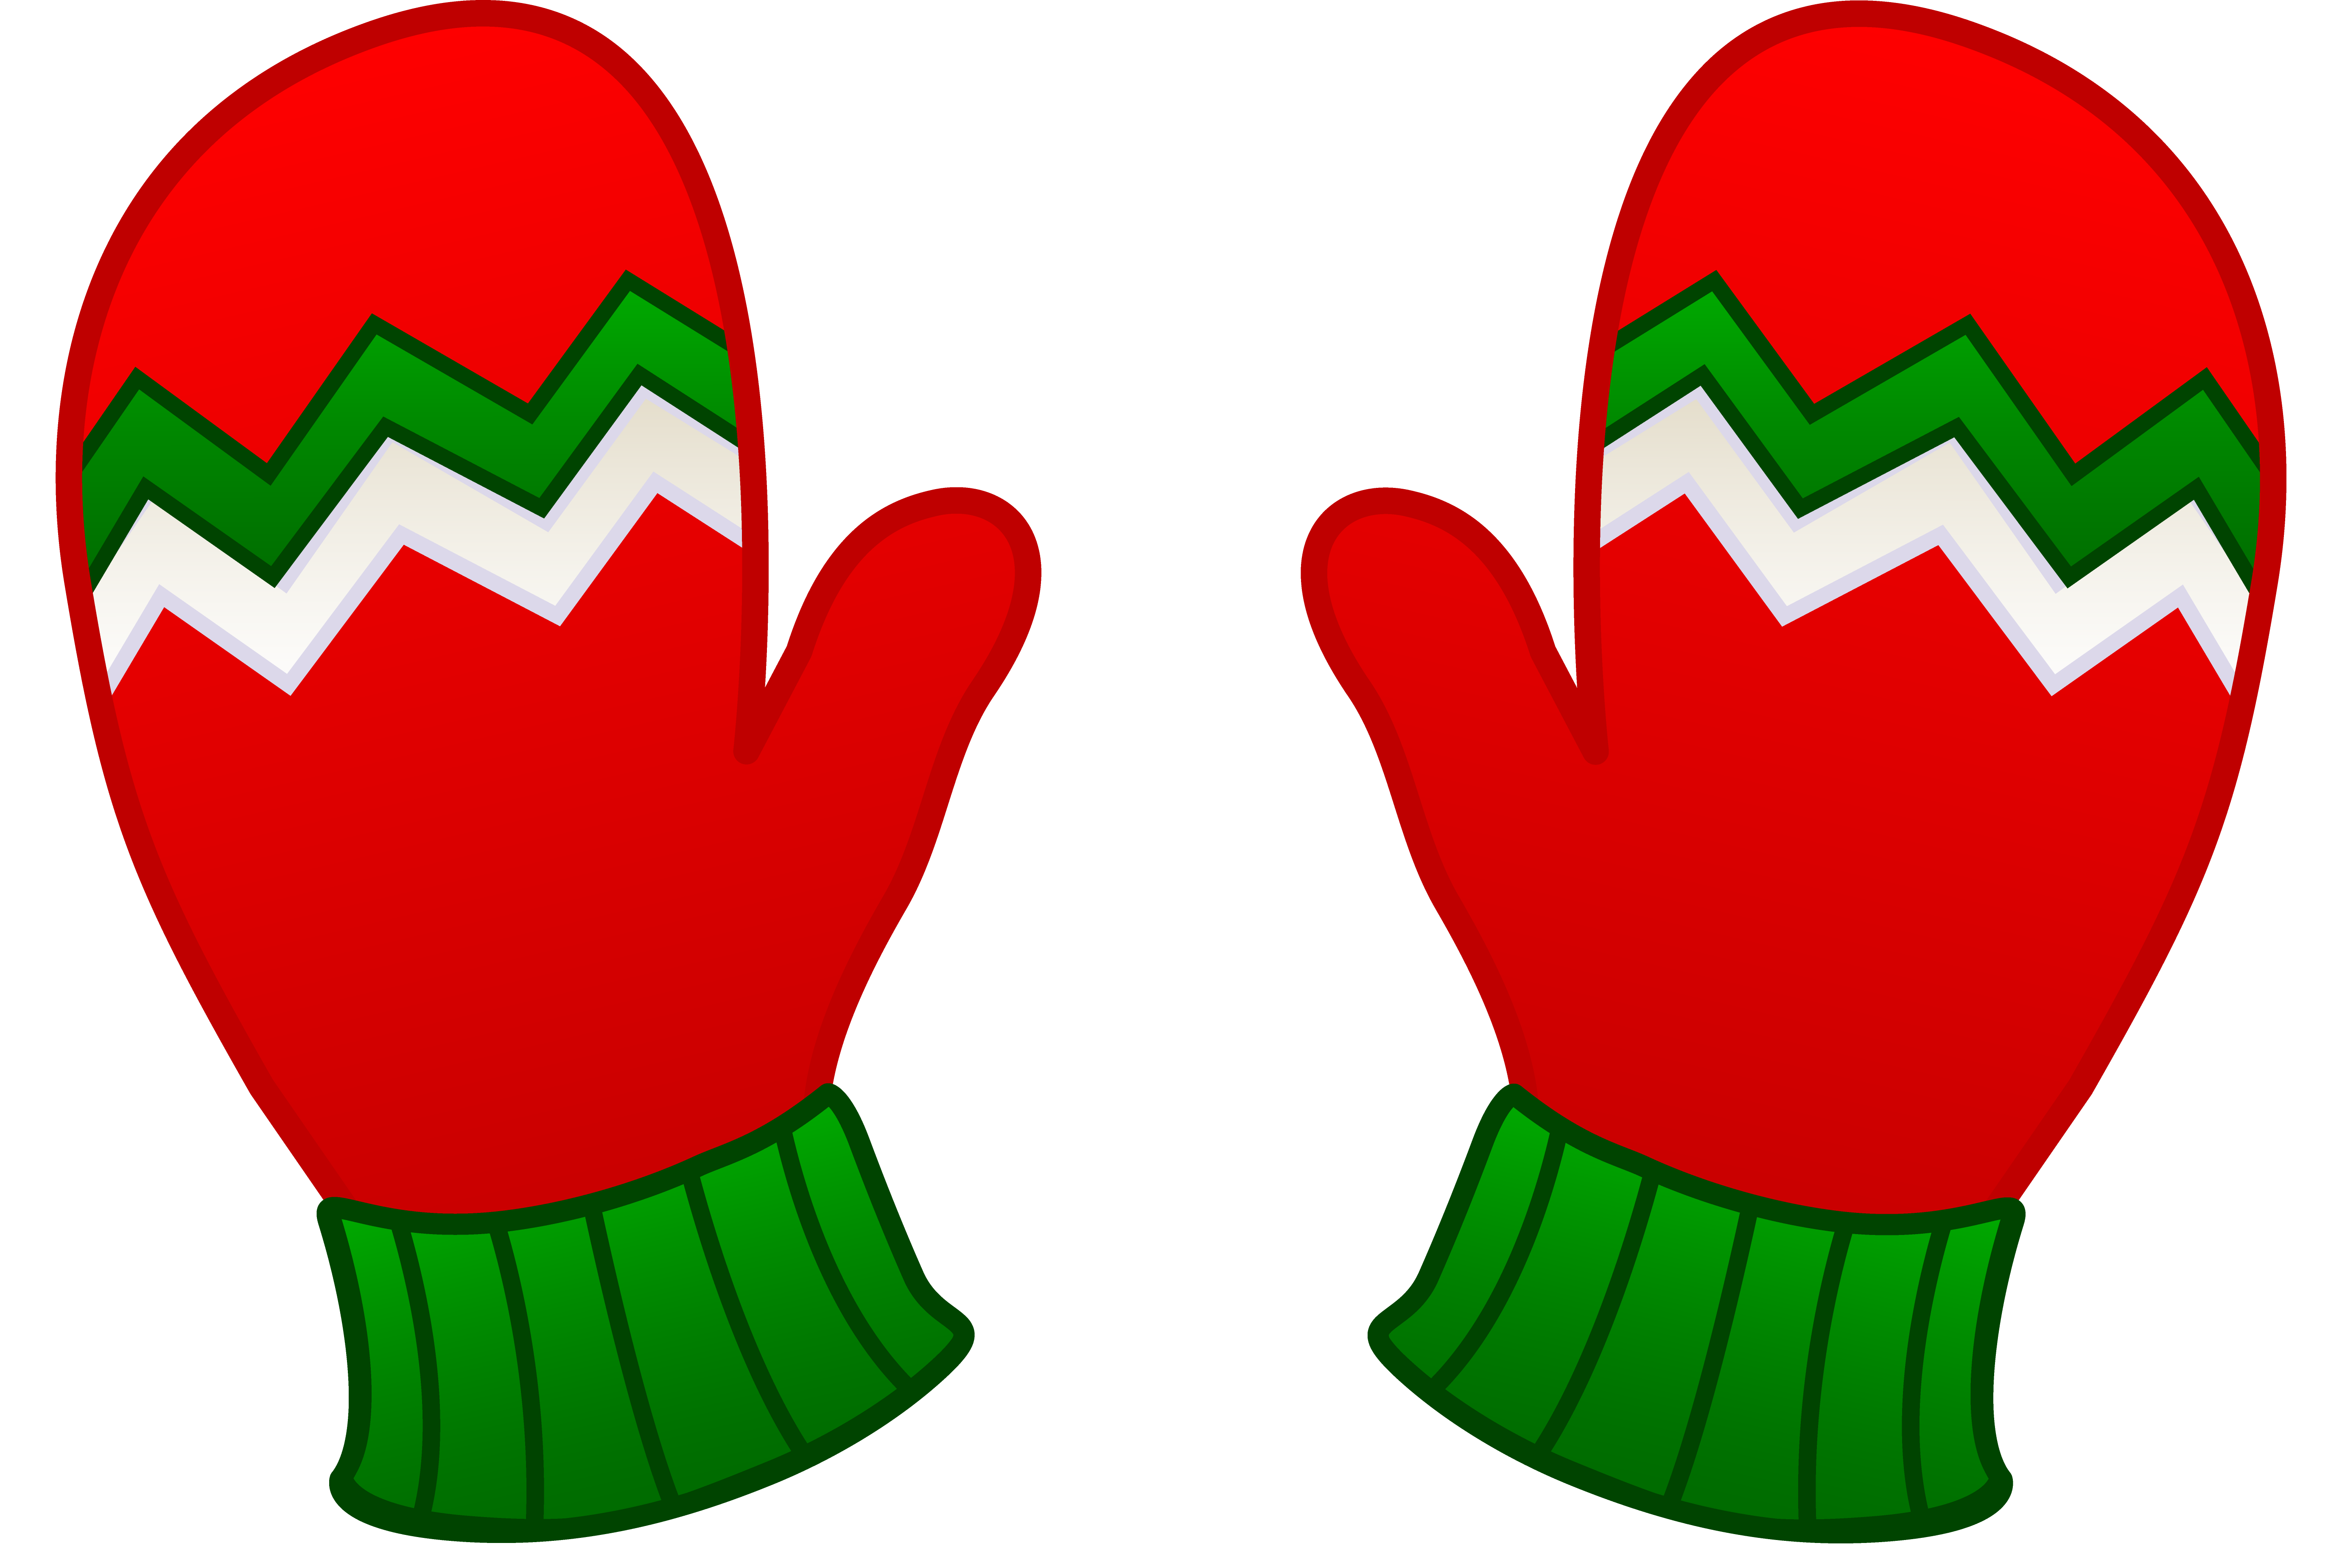 Mittens and . Gloves clipart royalty free